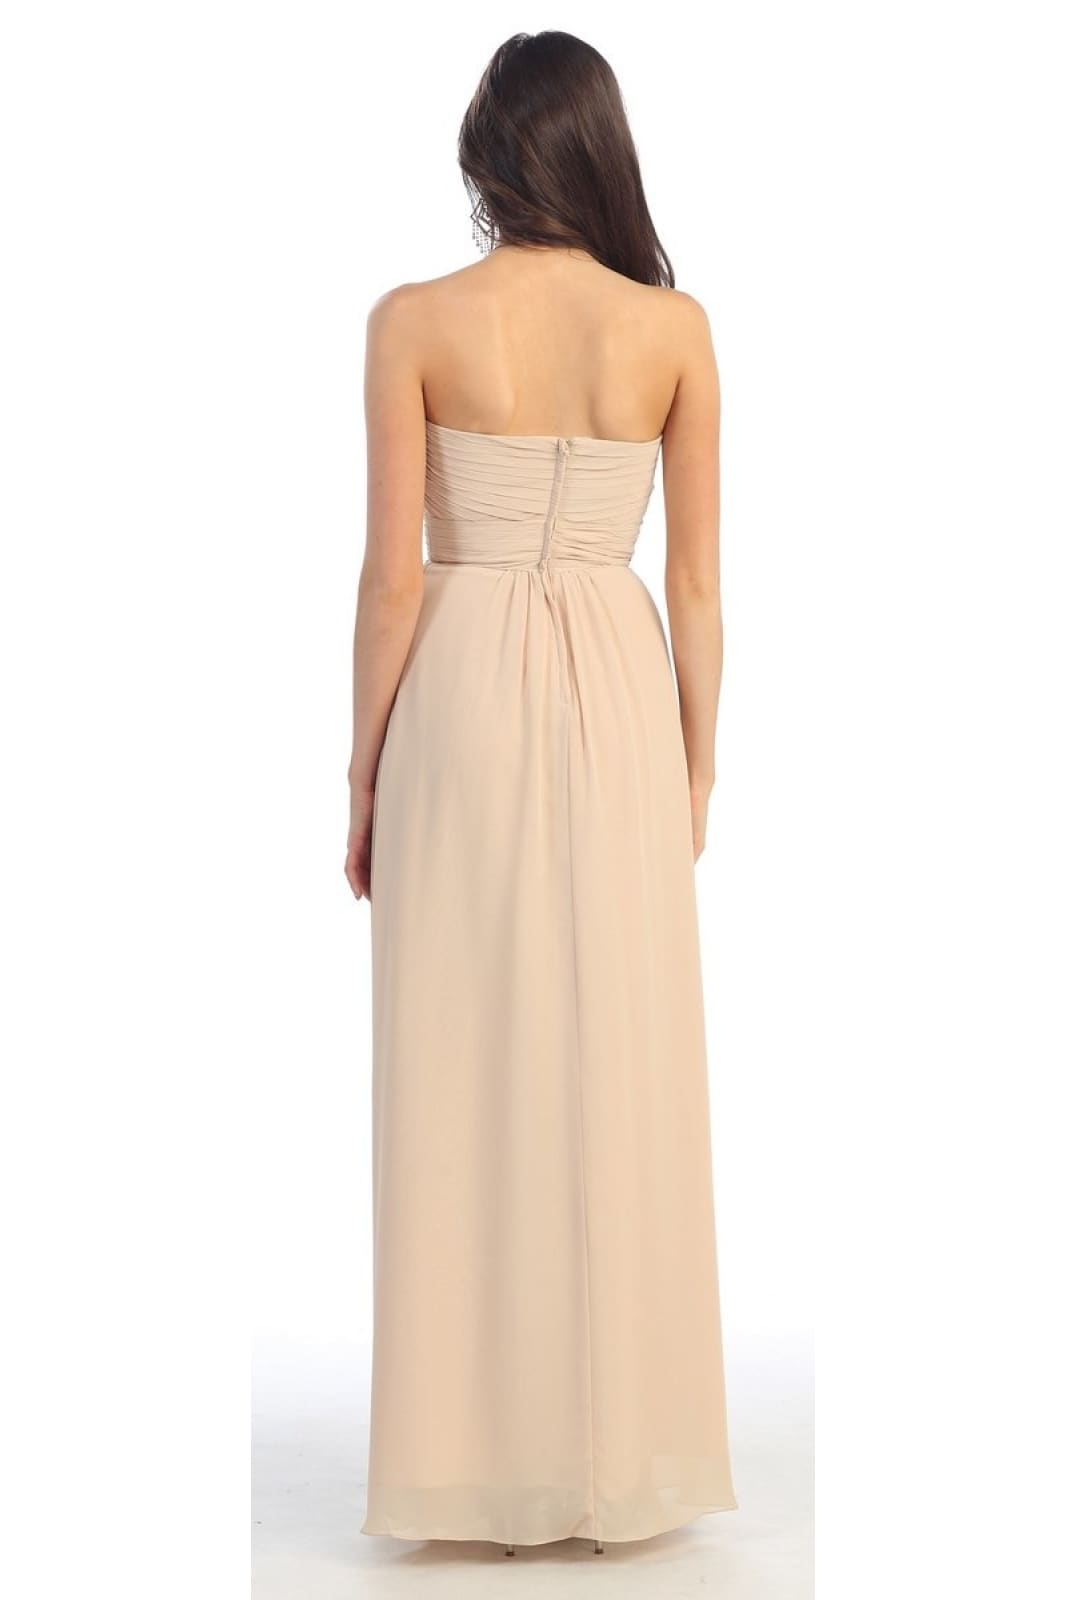 A dazzling strapless plus size bridesmaid dress- MQ895